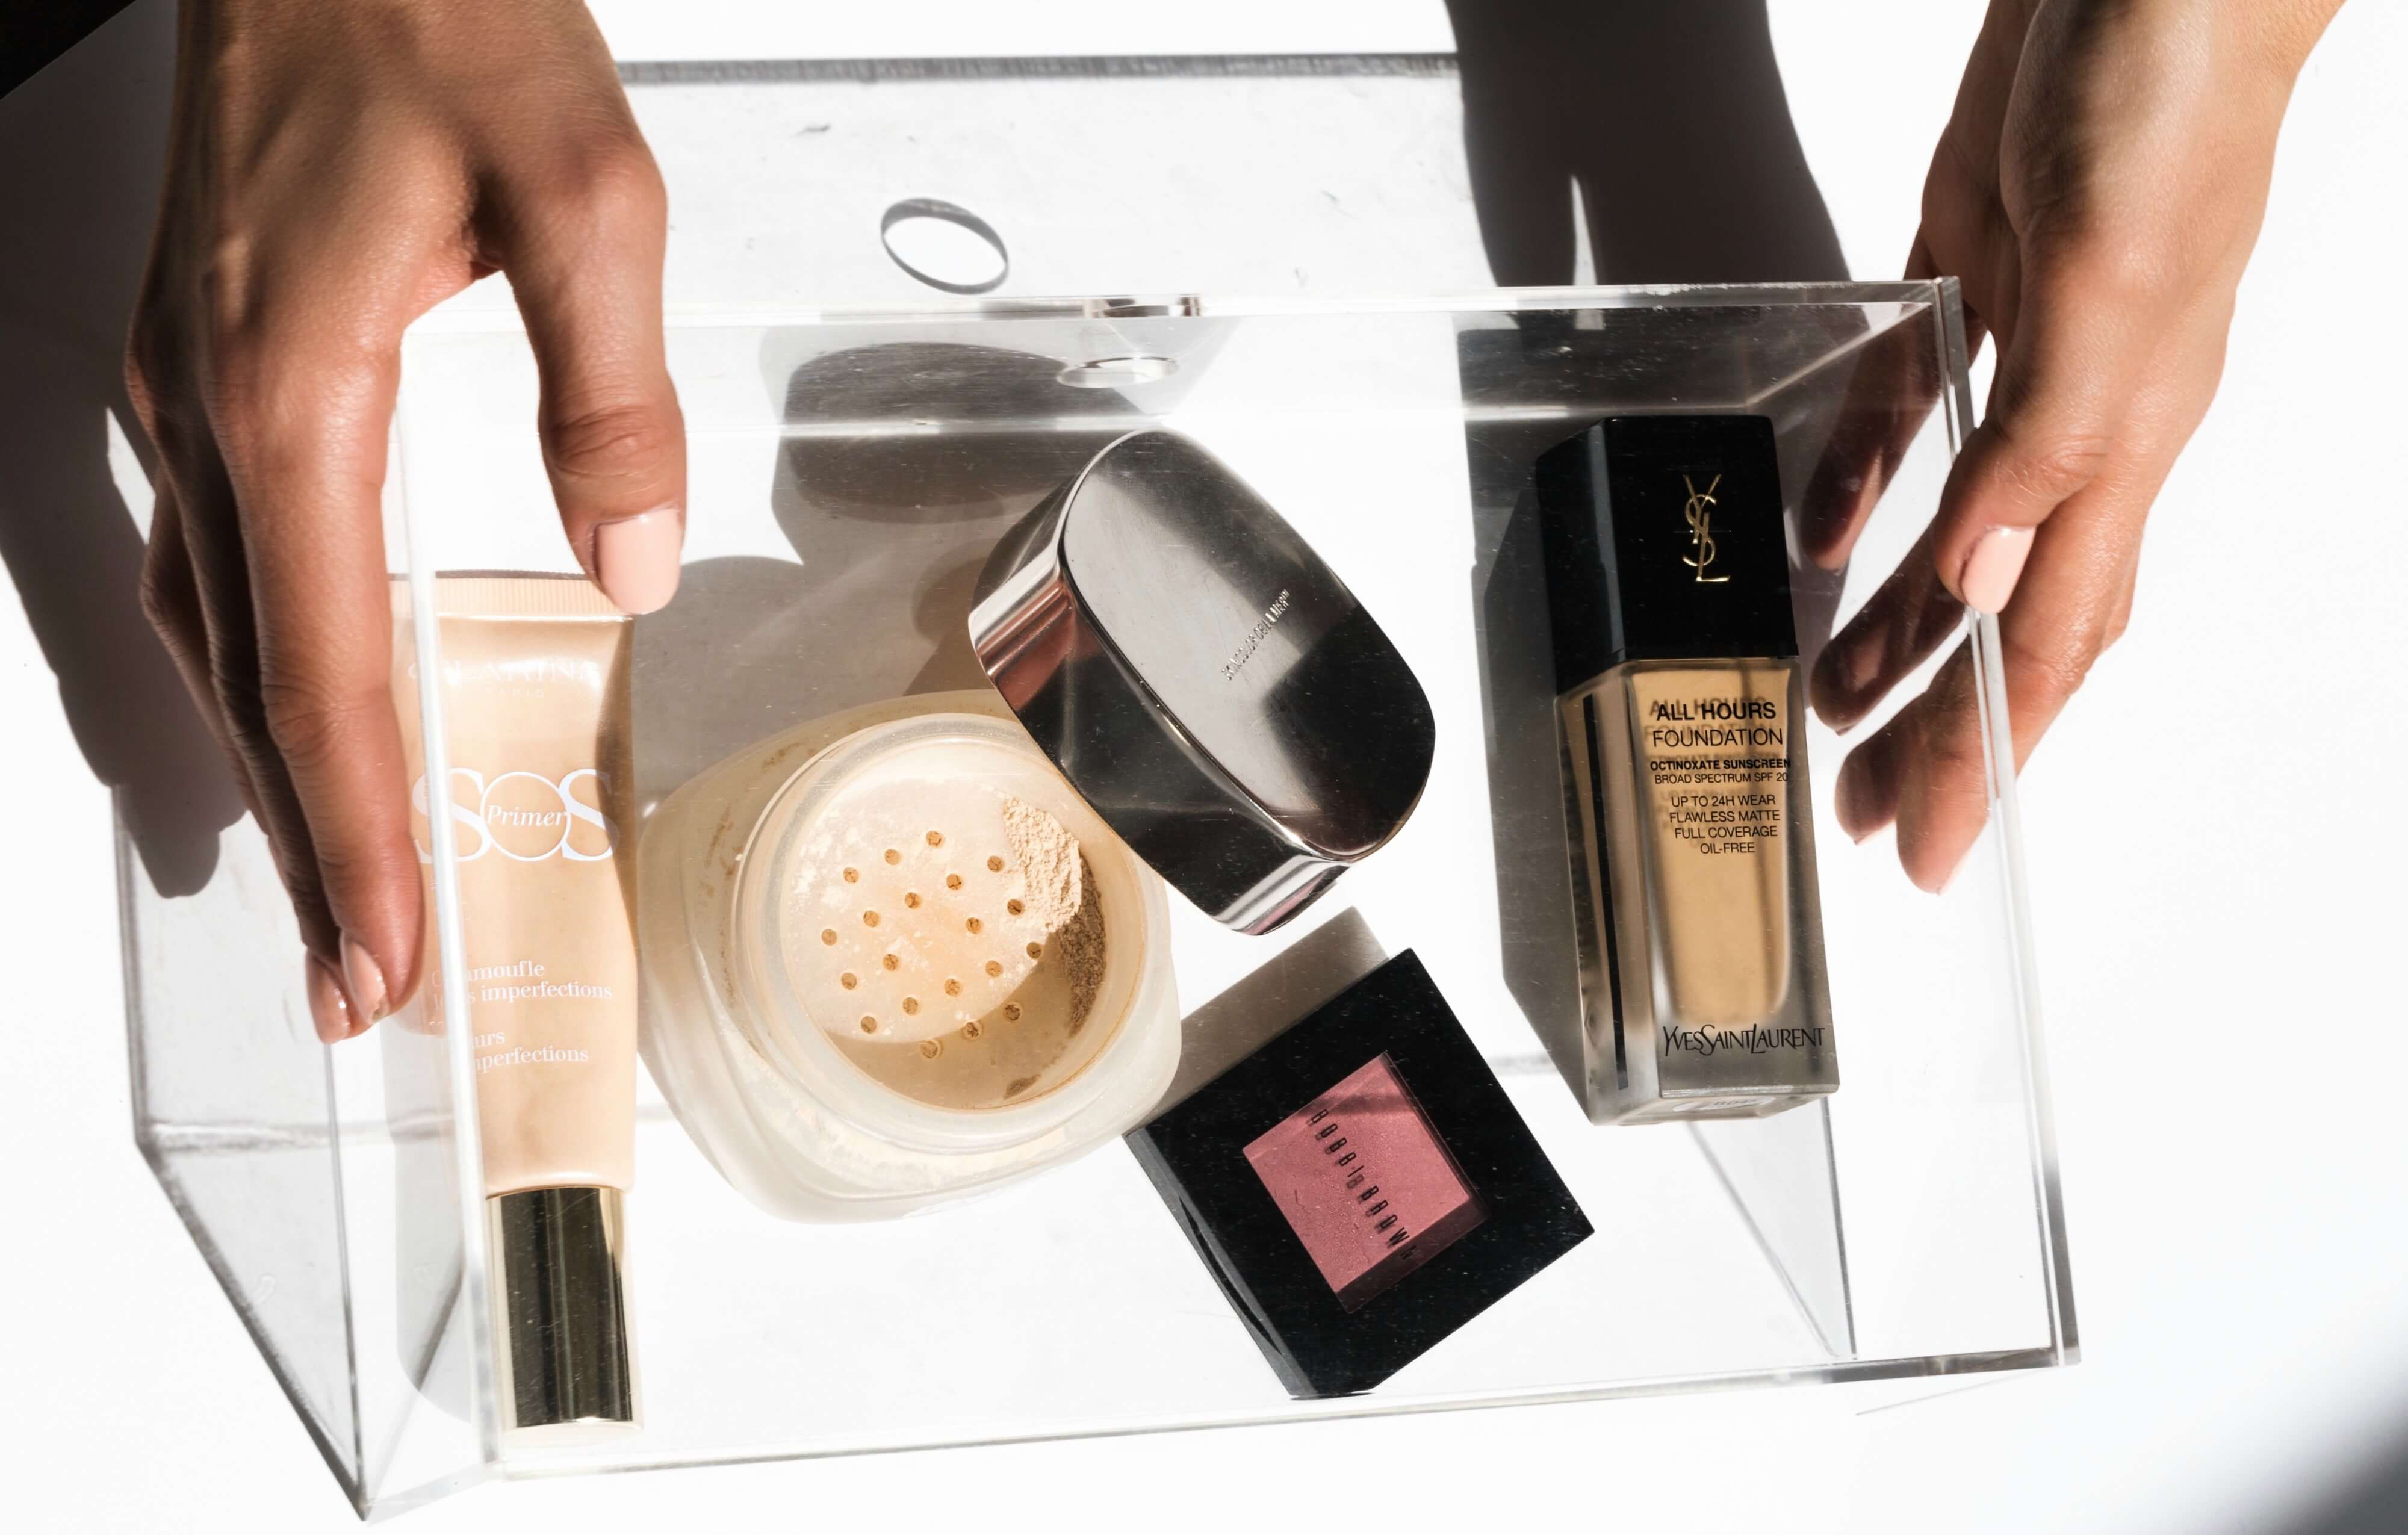 The best matte makeup for oily skin